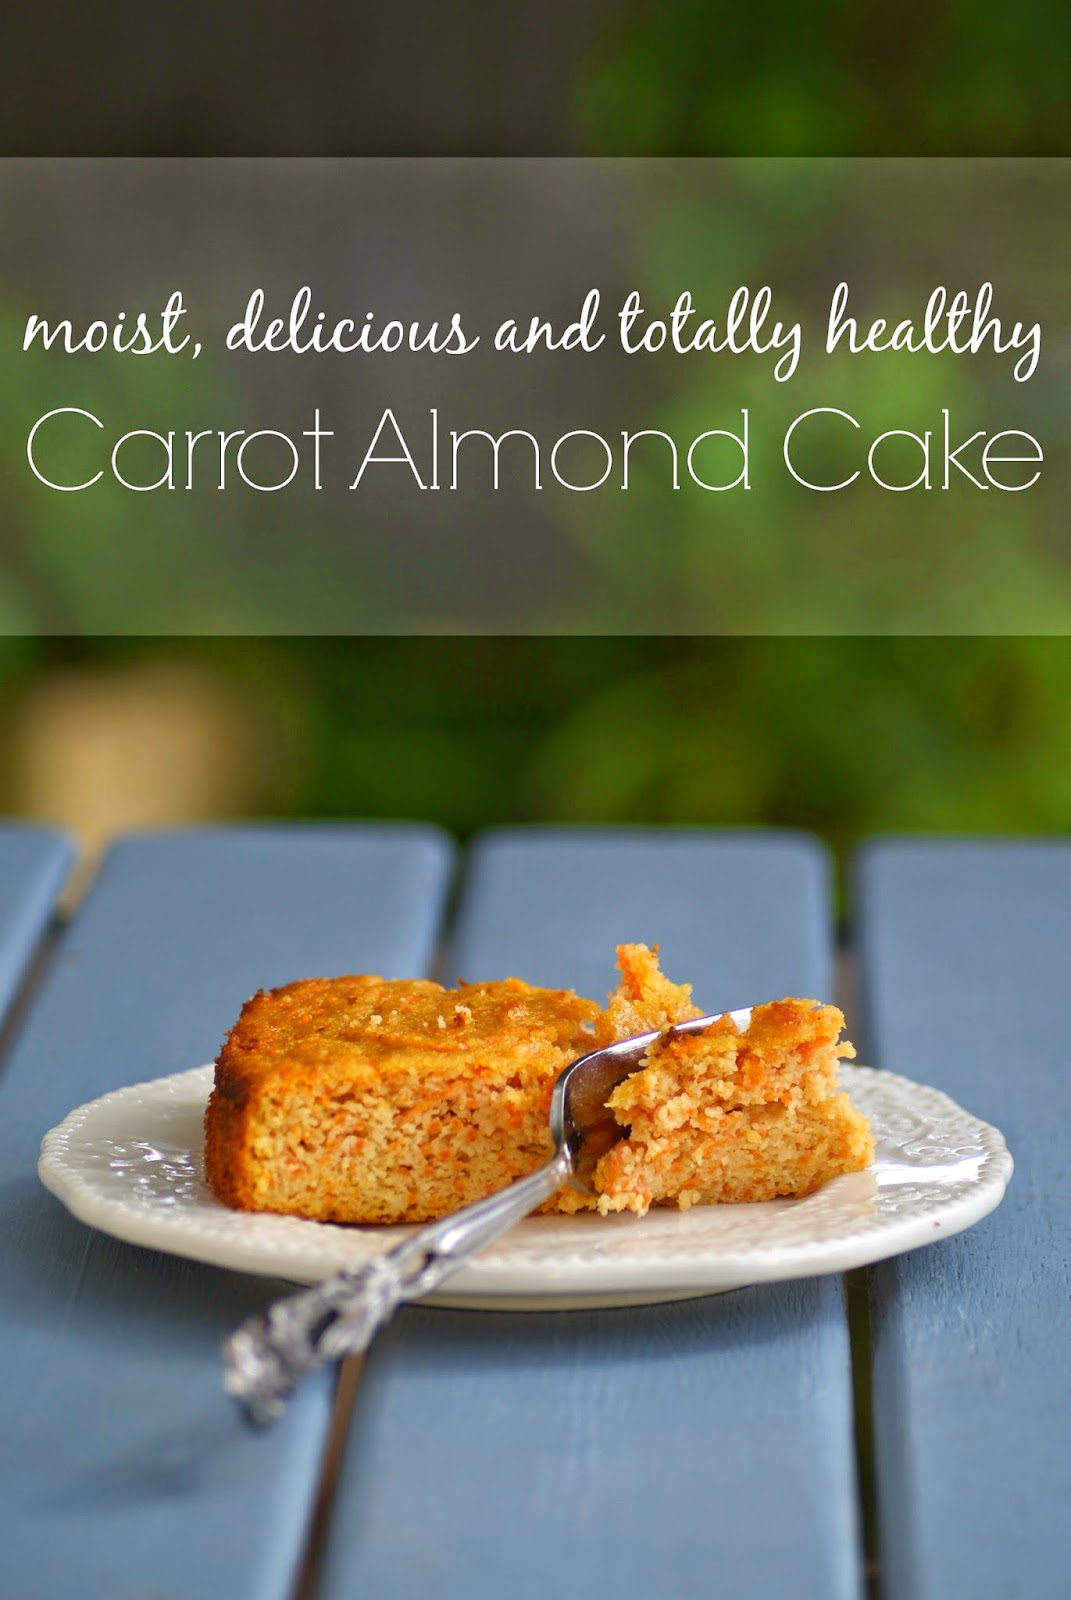 Healthy Carrot Almond Cake Recipe - Gluten free, low fat, low sugar